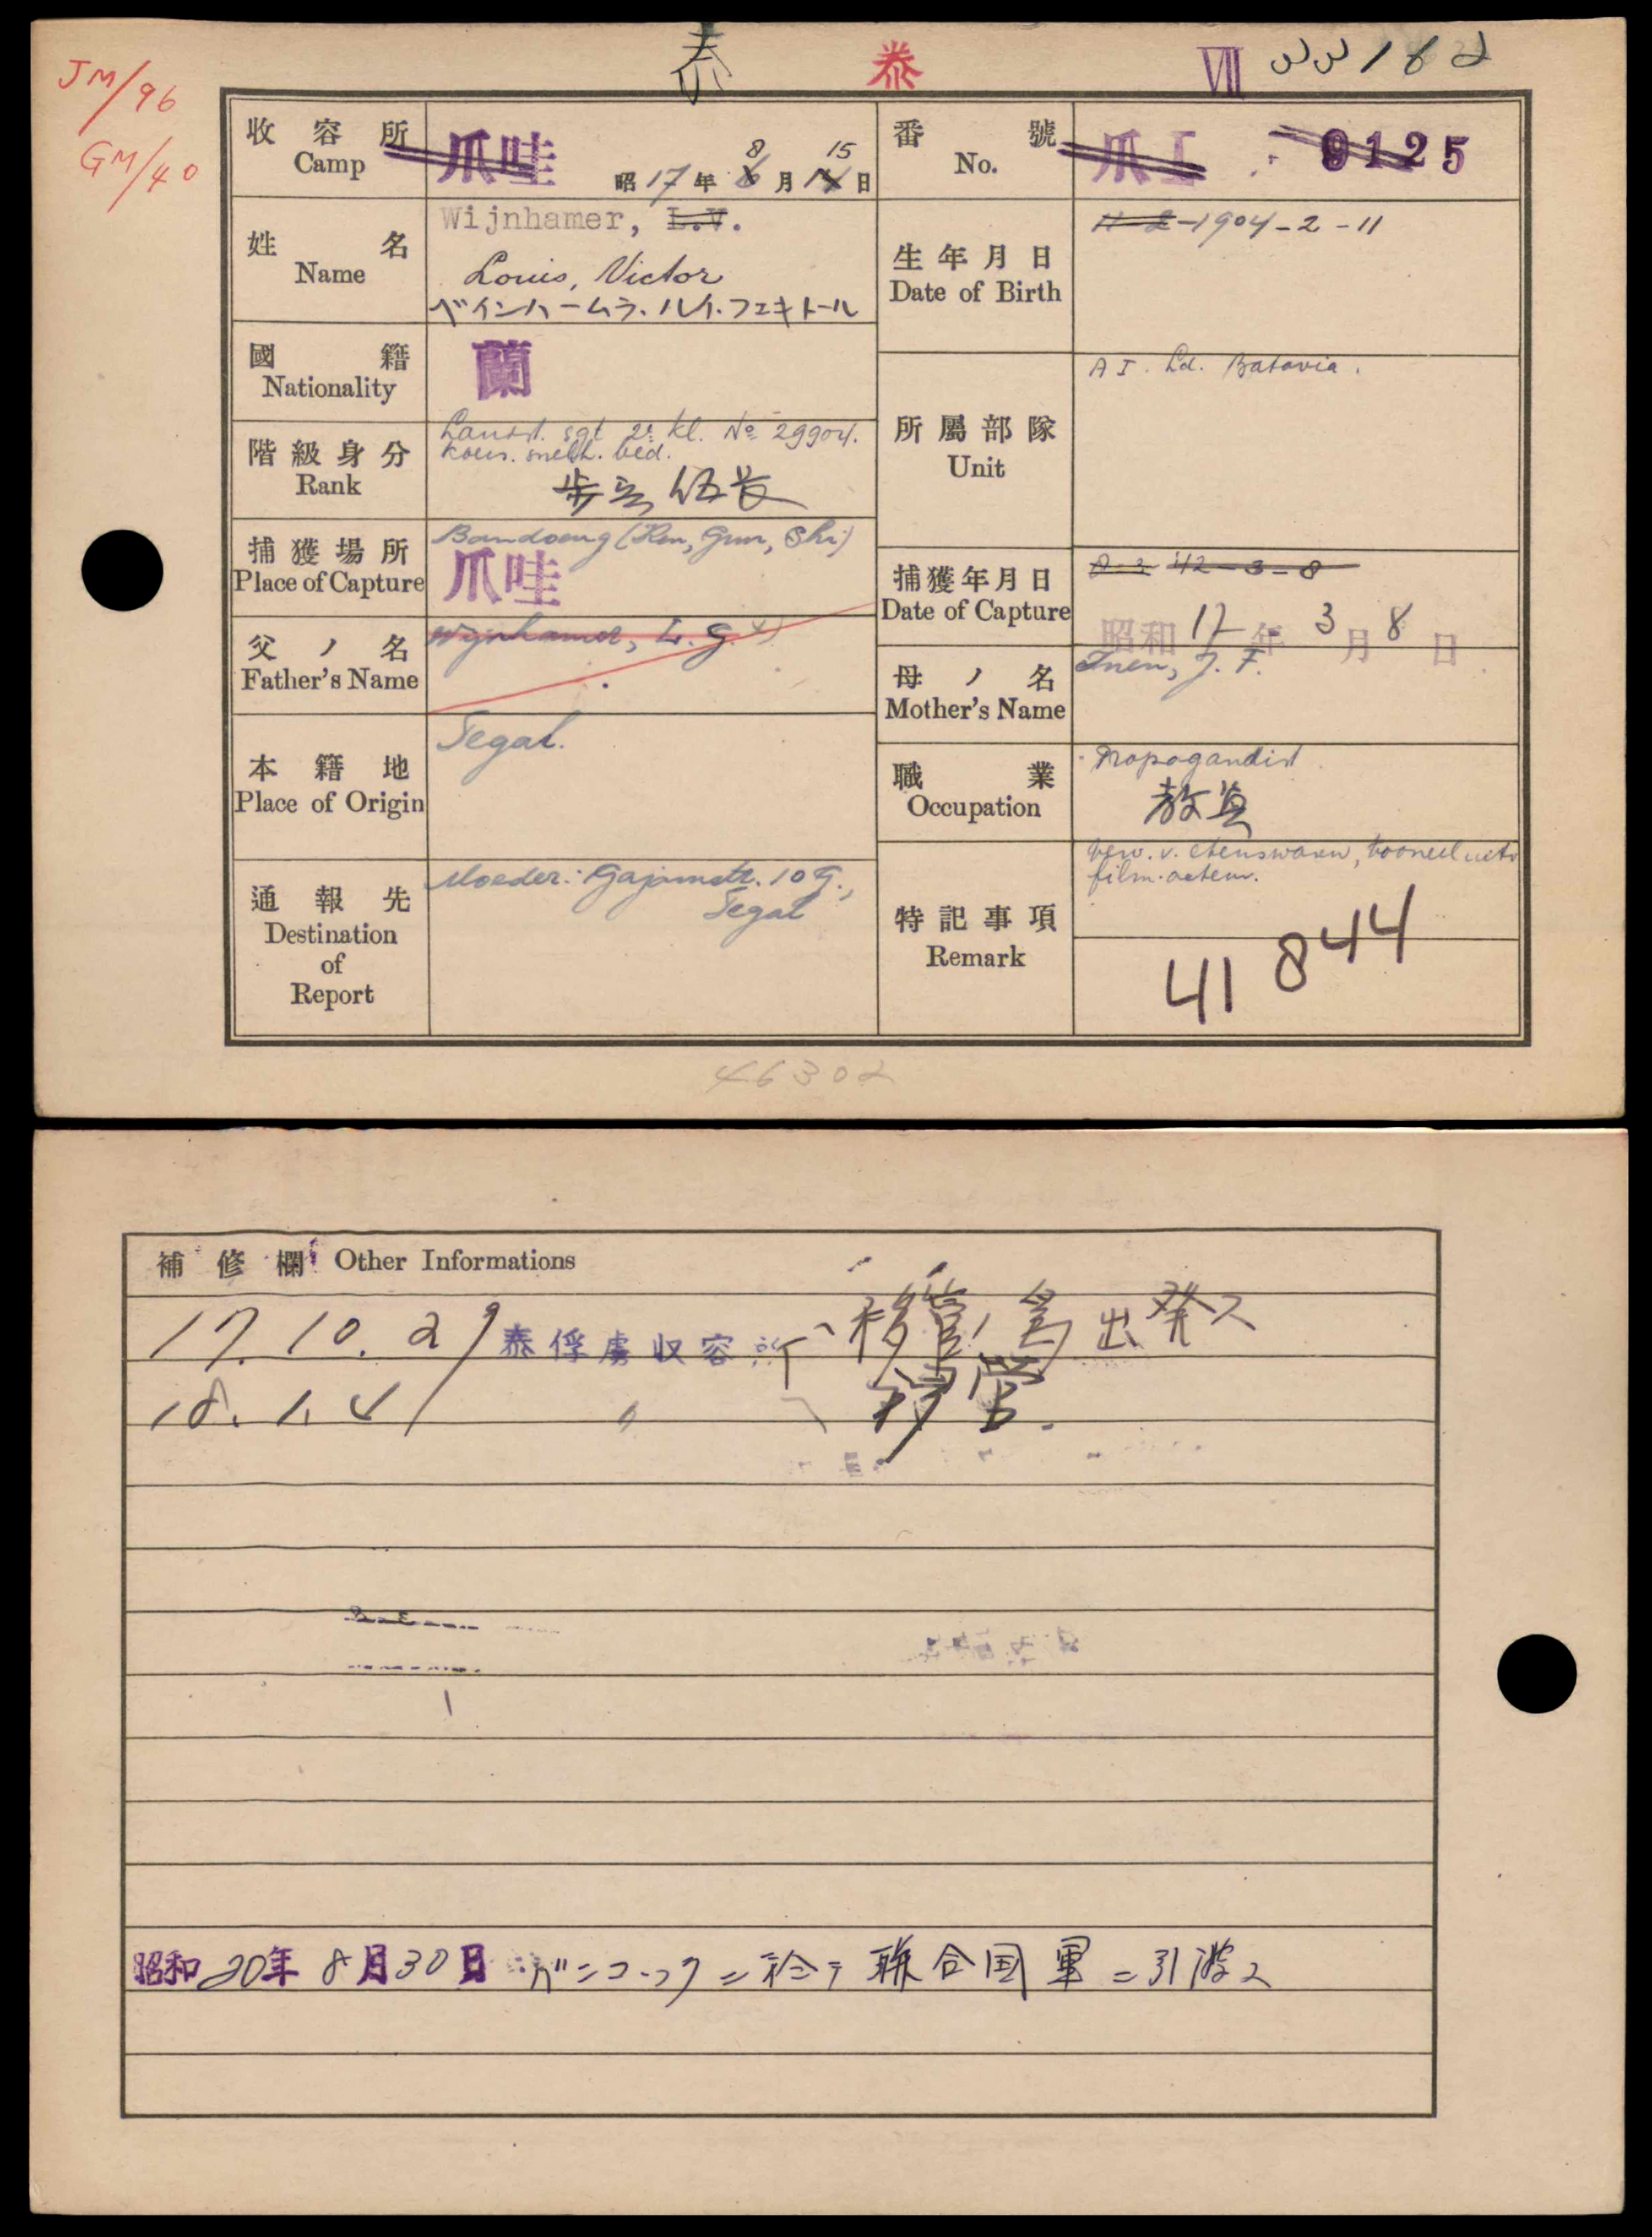 Was The United States Regular Army In Japan ,S. America, Or Sumatra During or Before WW1?